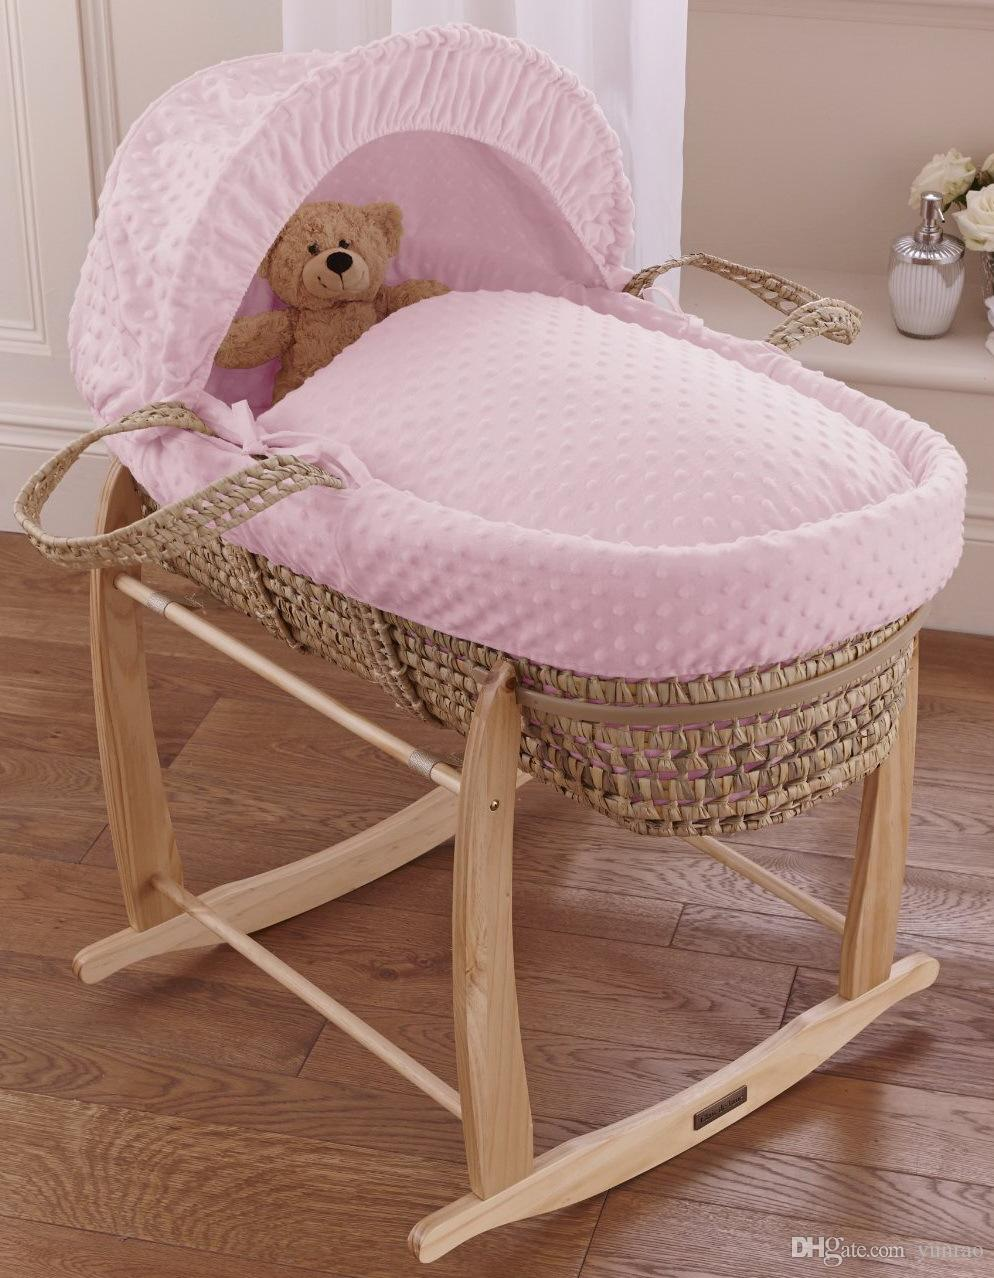 Baby cribs moses baskets - British Baby Moses Basket Replacement Cover Set Pink Dimple Crib Bedding Set 5 Pieces Inc Quilt